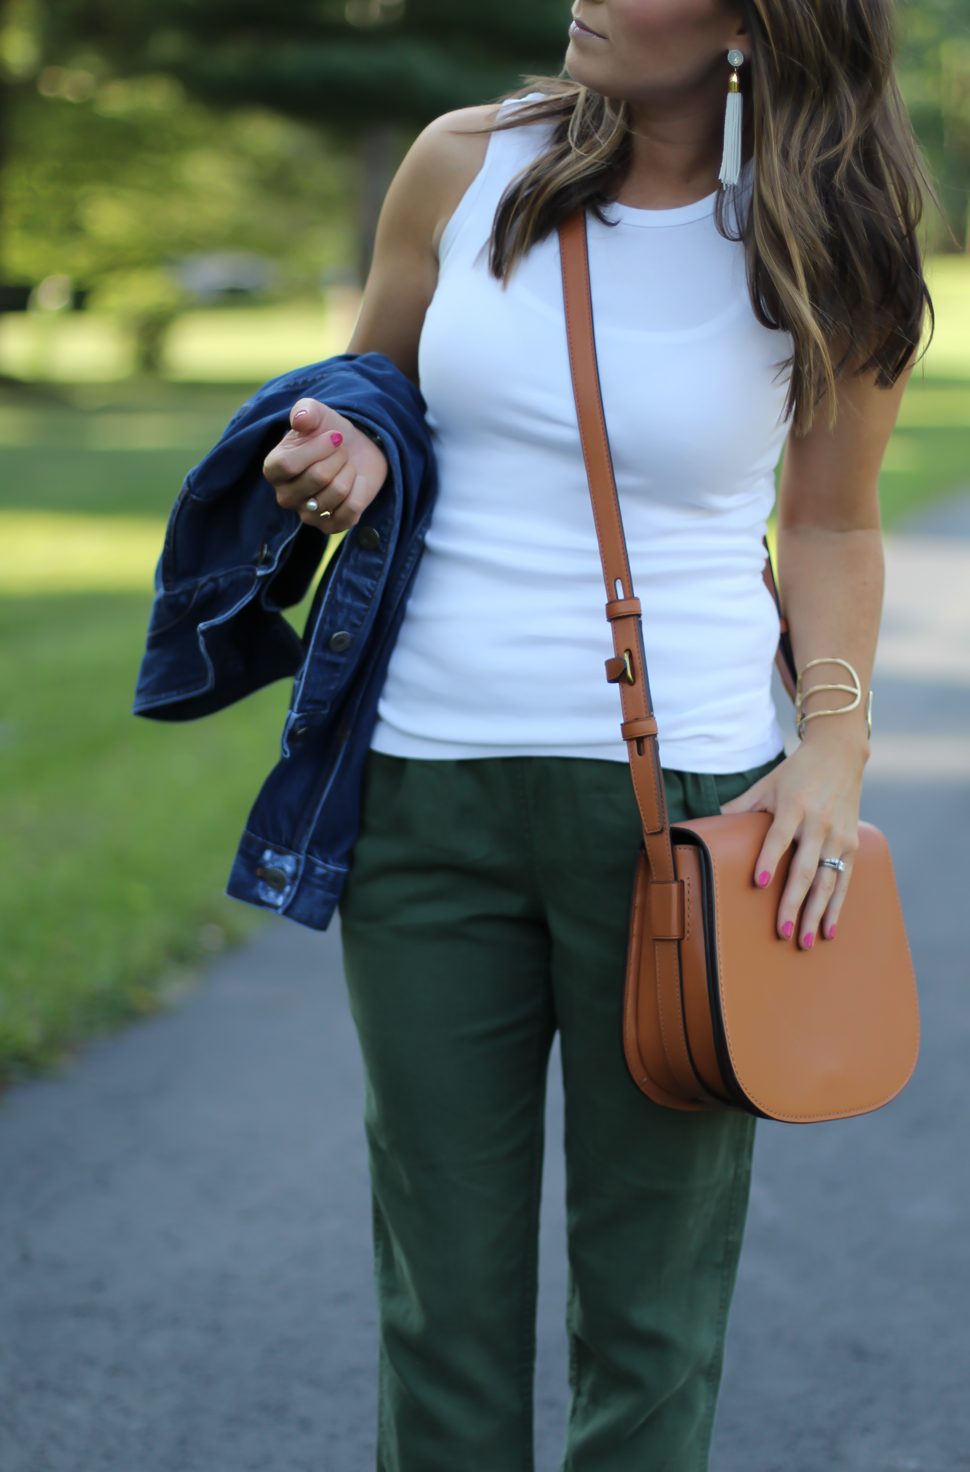 Army Green Joggers, White Sleeveless Shell Tee, Gladiator Sandals, Saddle Bag, J.Crew, tory Burch, Ancient Gladiator 12